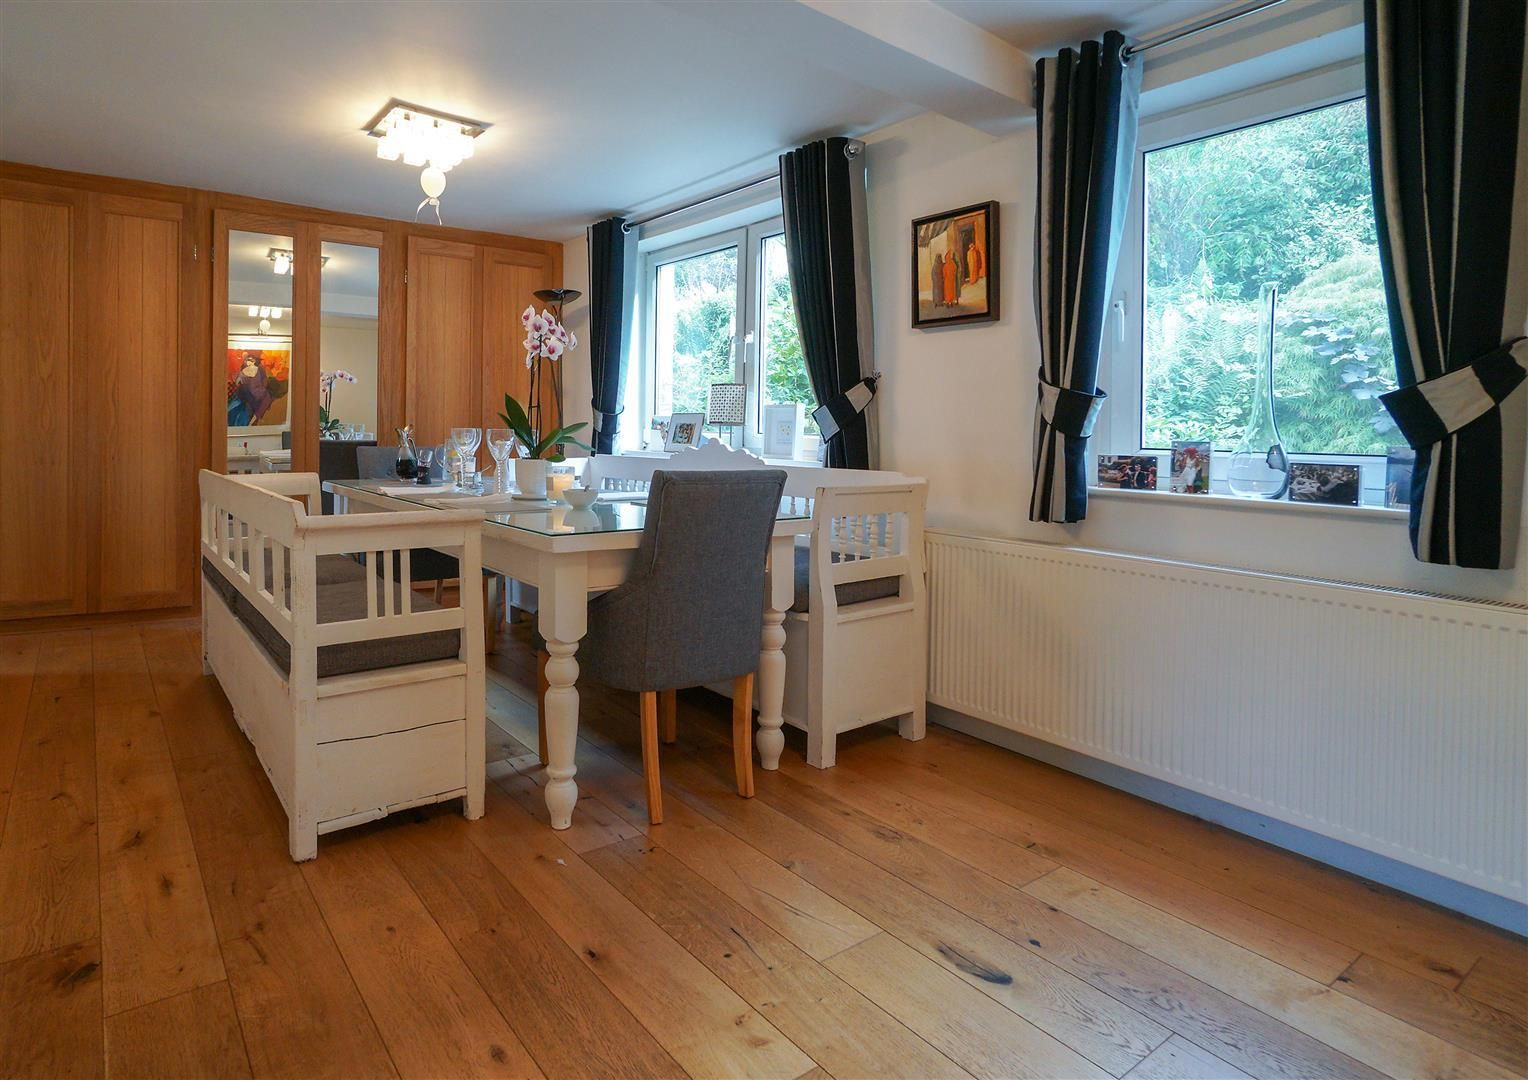 4 bed house for sale in Clent 8